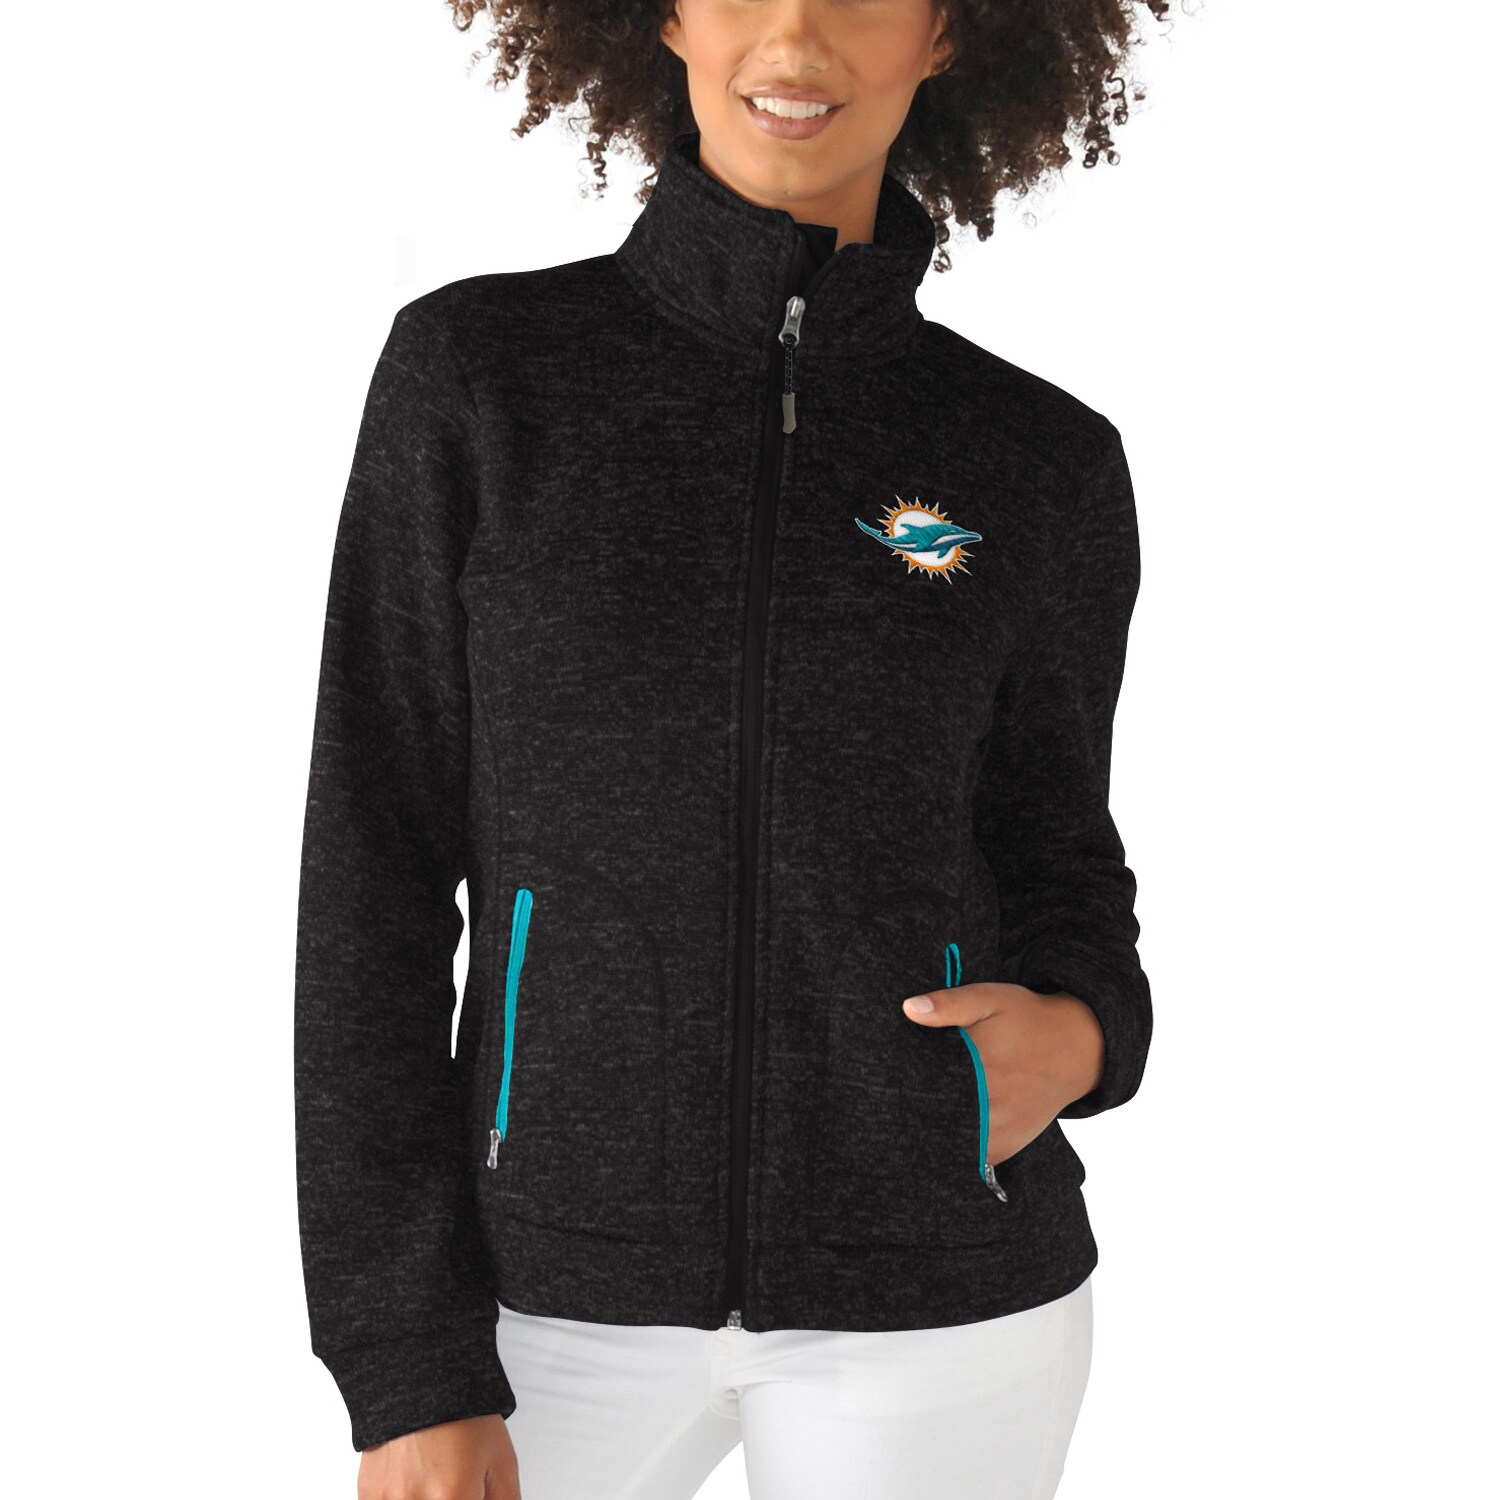 Miami Dolphins G-III 4Her by Carl Banks Women's Checkpoint Full Zip Jacket - Black